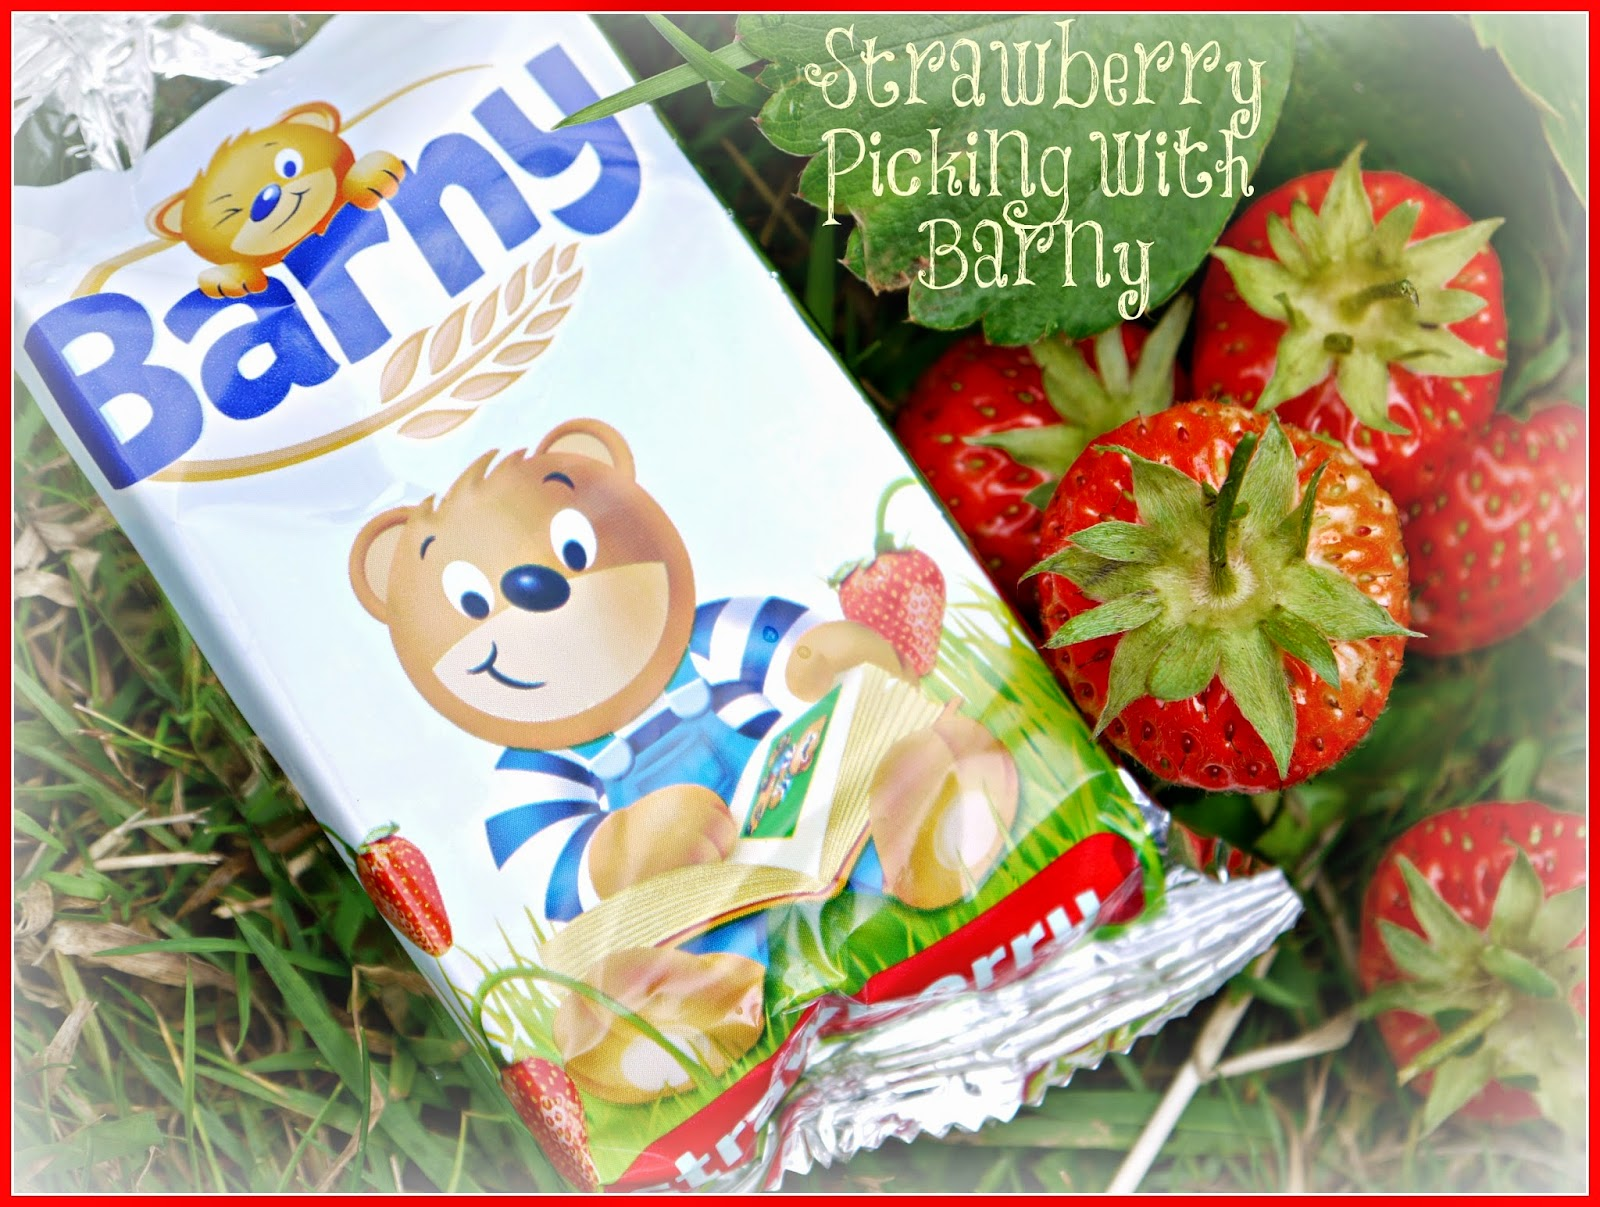 Barny, strawberry